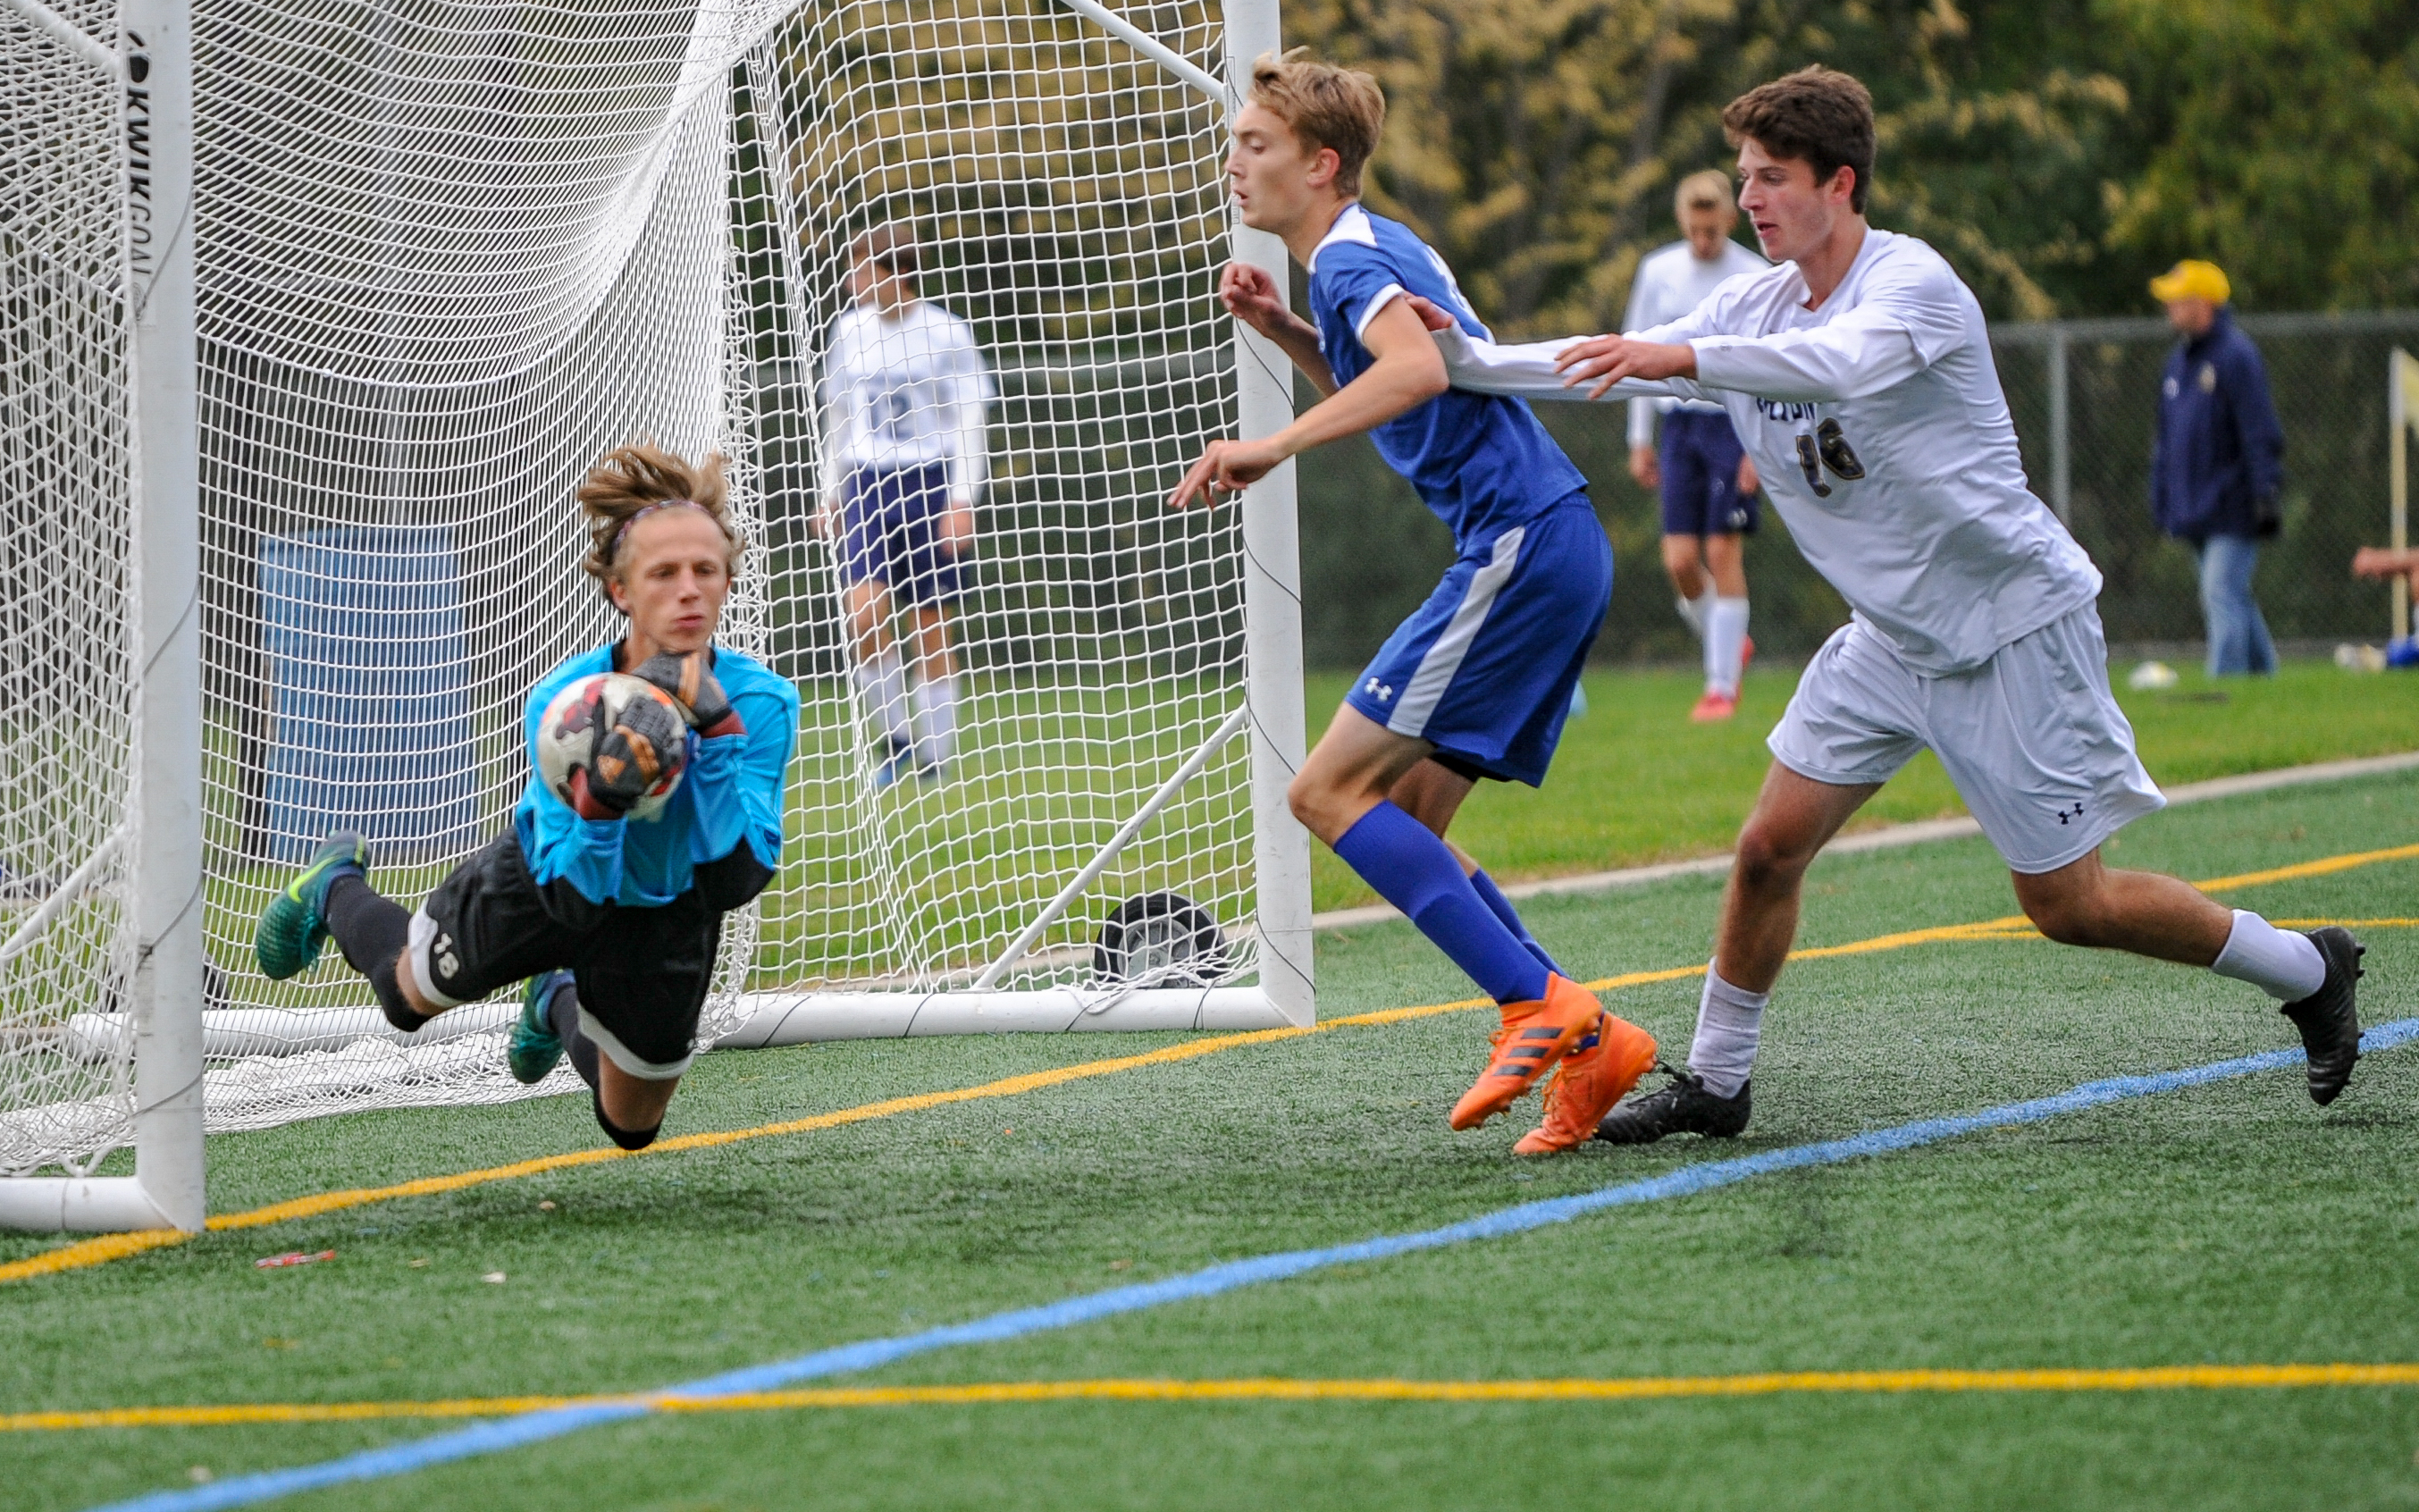 Minnetonka's goalkeeper Luca Vereecken makes a diving save in the second half of Saturday's game against Prior Lake. The Skippers went on to beat the Lakers 1-0. Photo by Earl J. Ebensteiner, SportsEngine